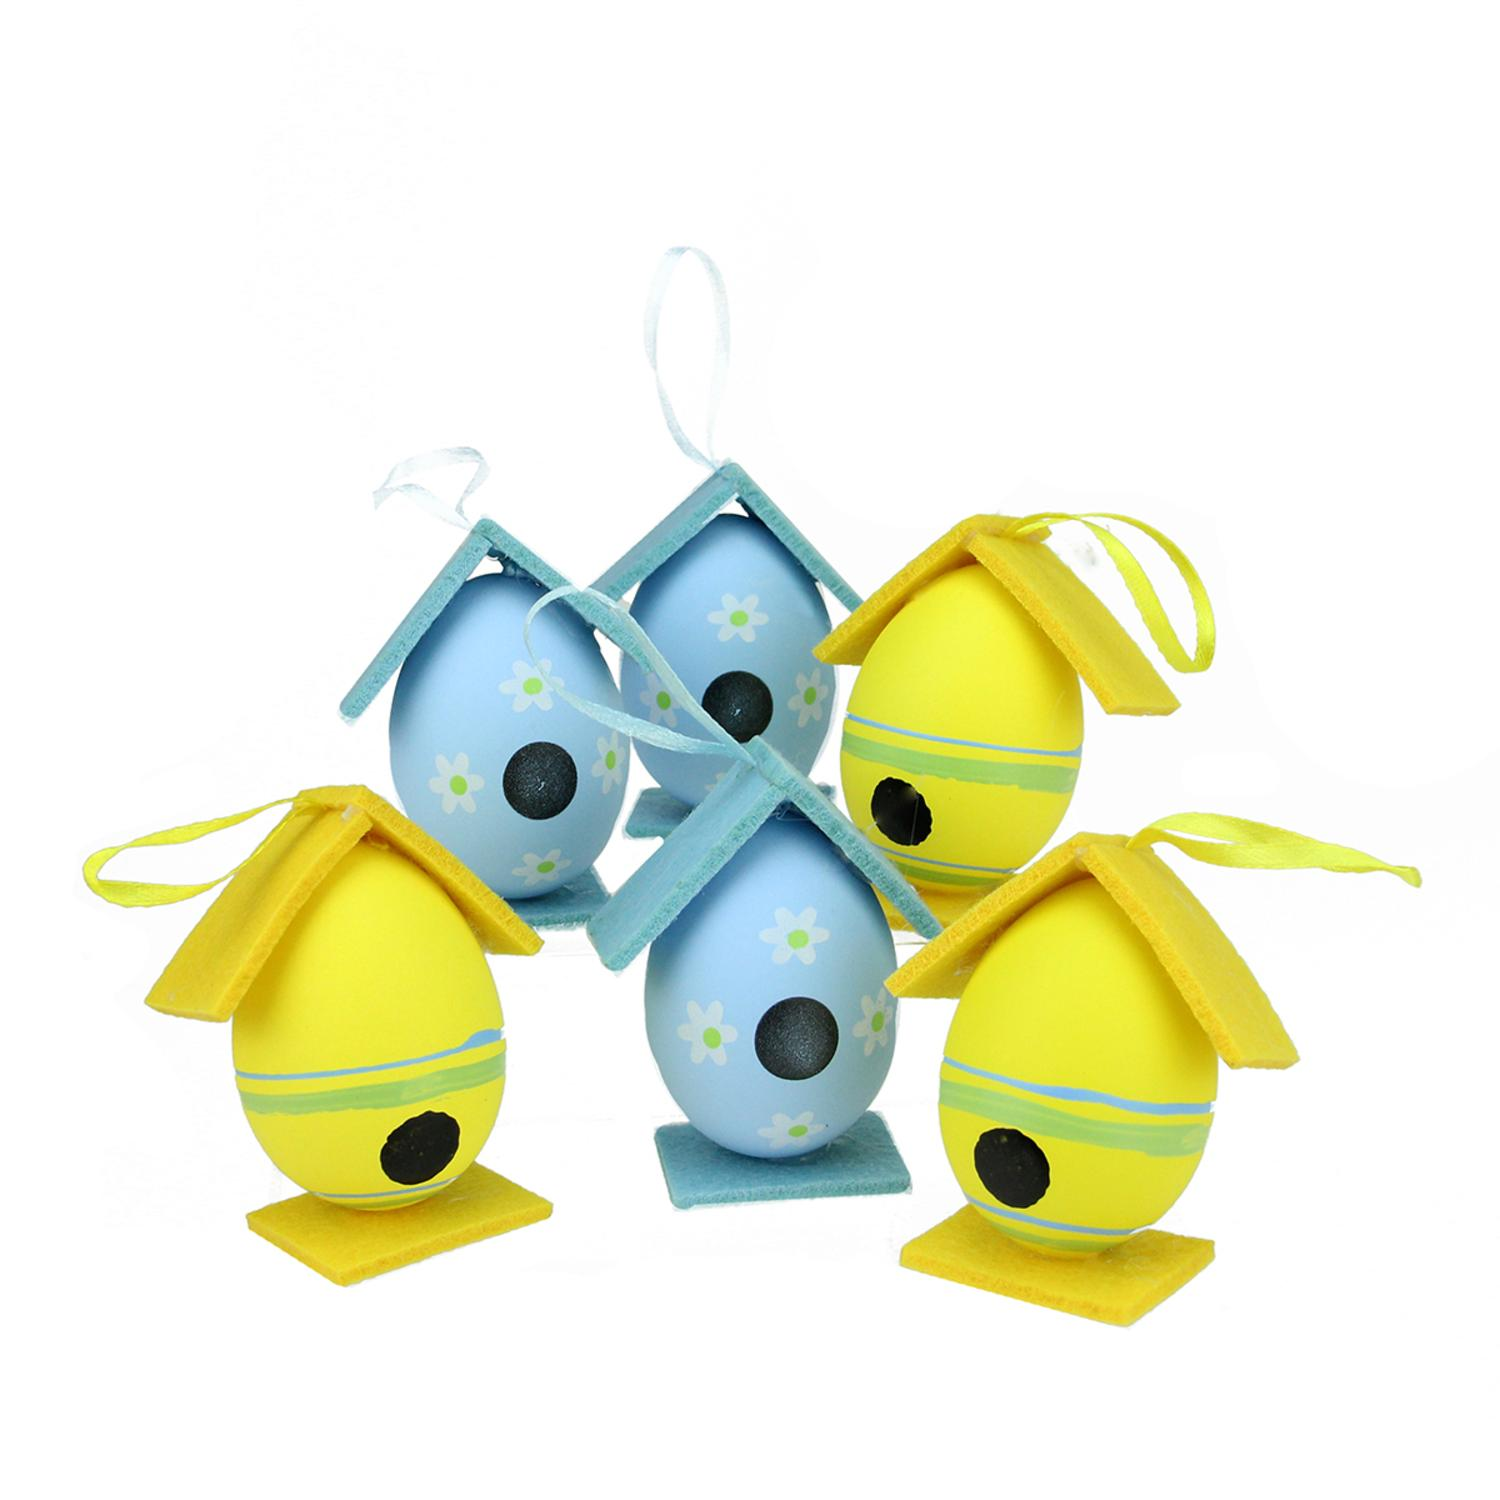 ''Set of 6 Yellow and Blue Decorative Floral Painted Design Spring Easter Egg BIRDHOUSE Ornaments 3''''